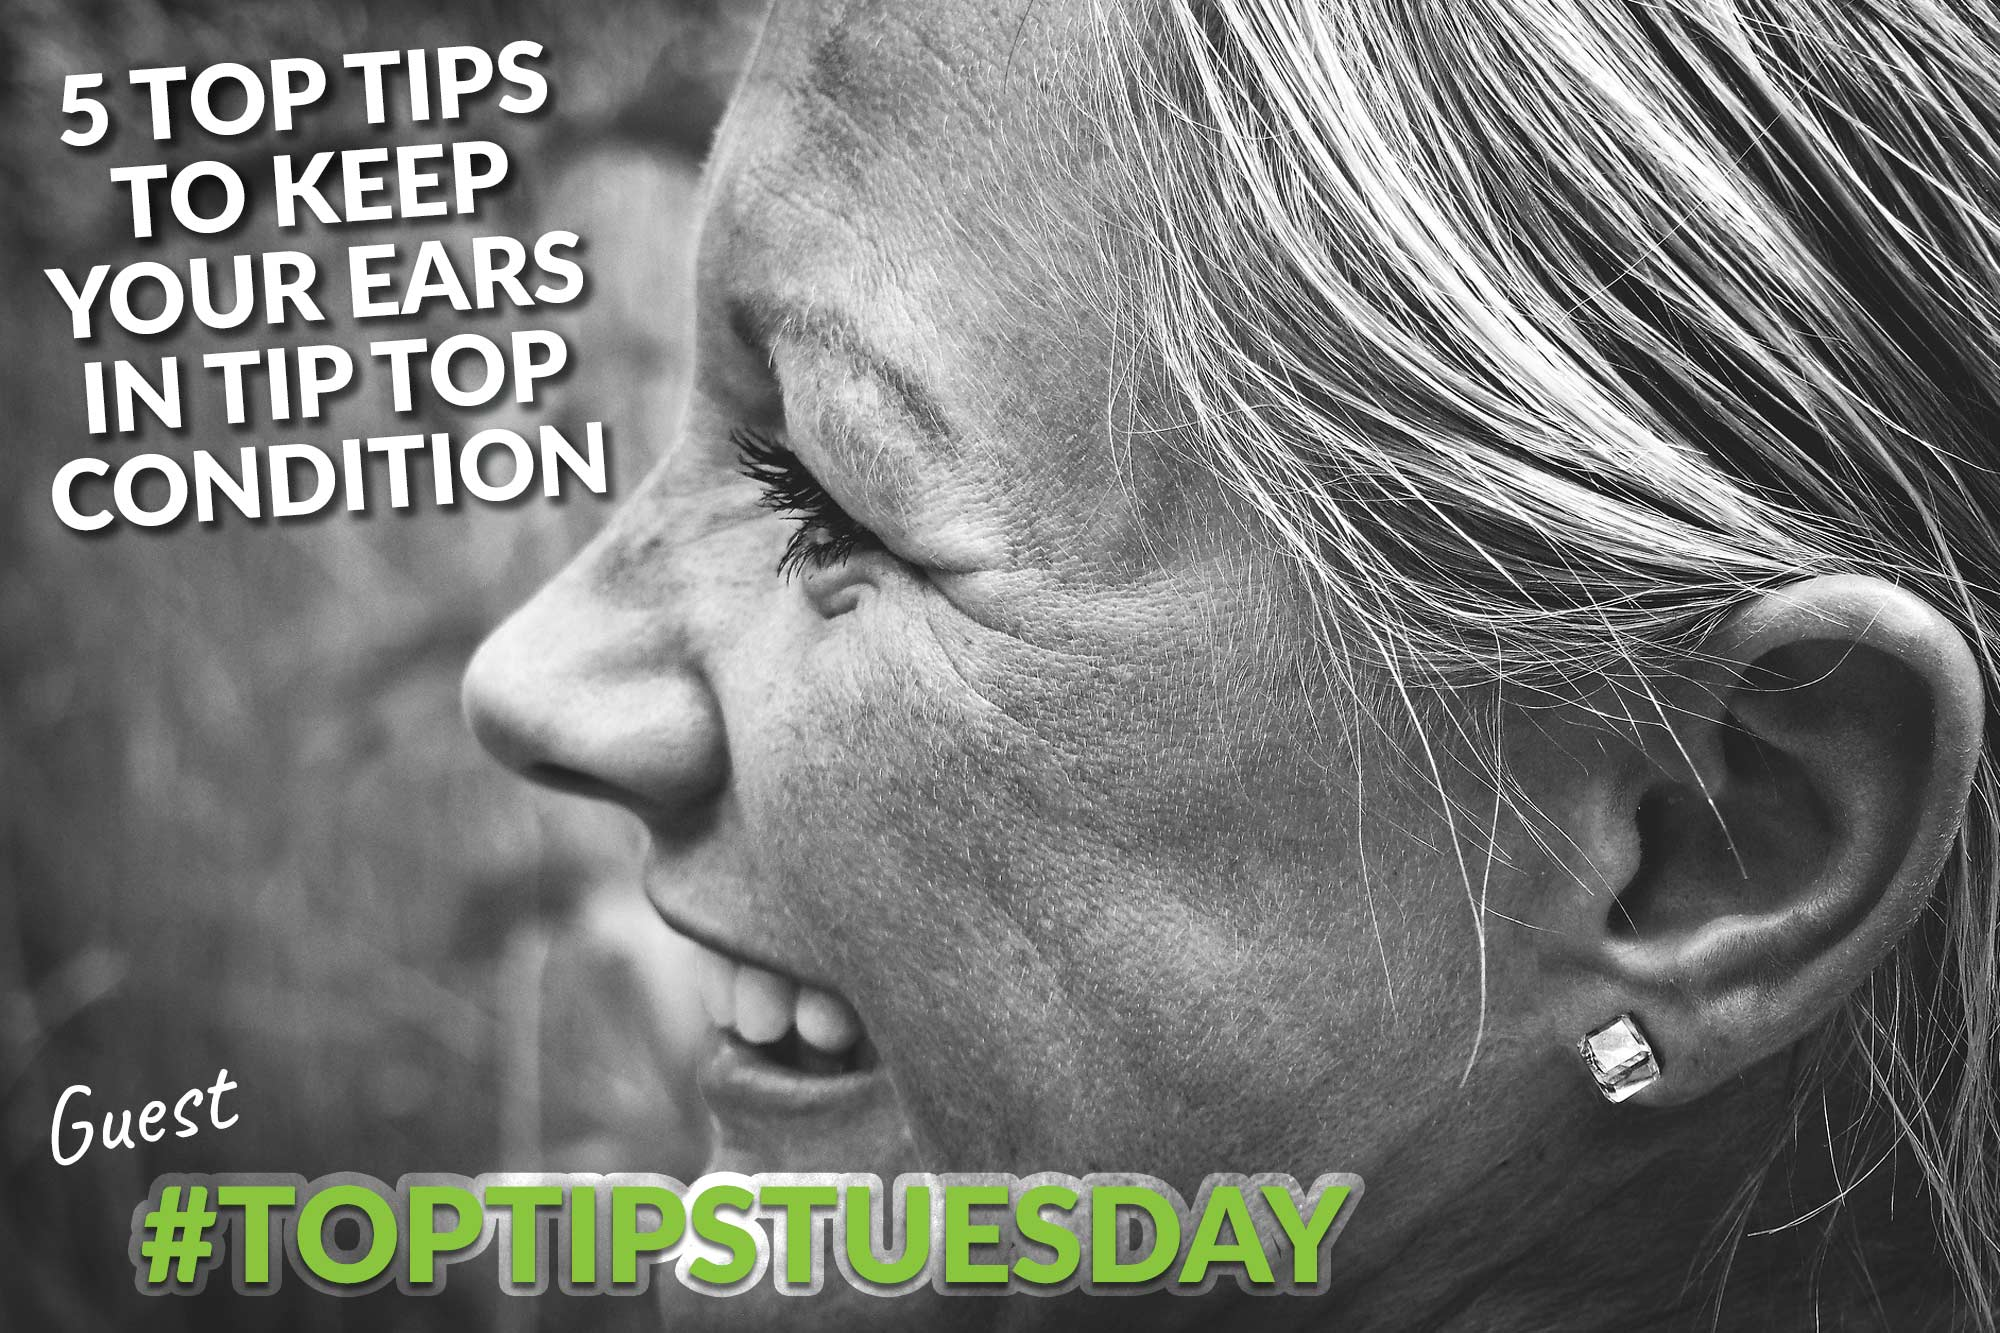 5 top tips for keeping your ears in tip top condition